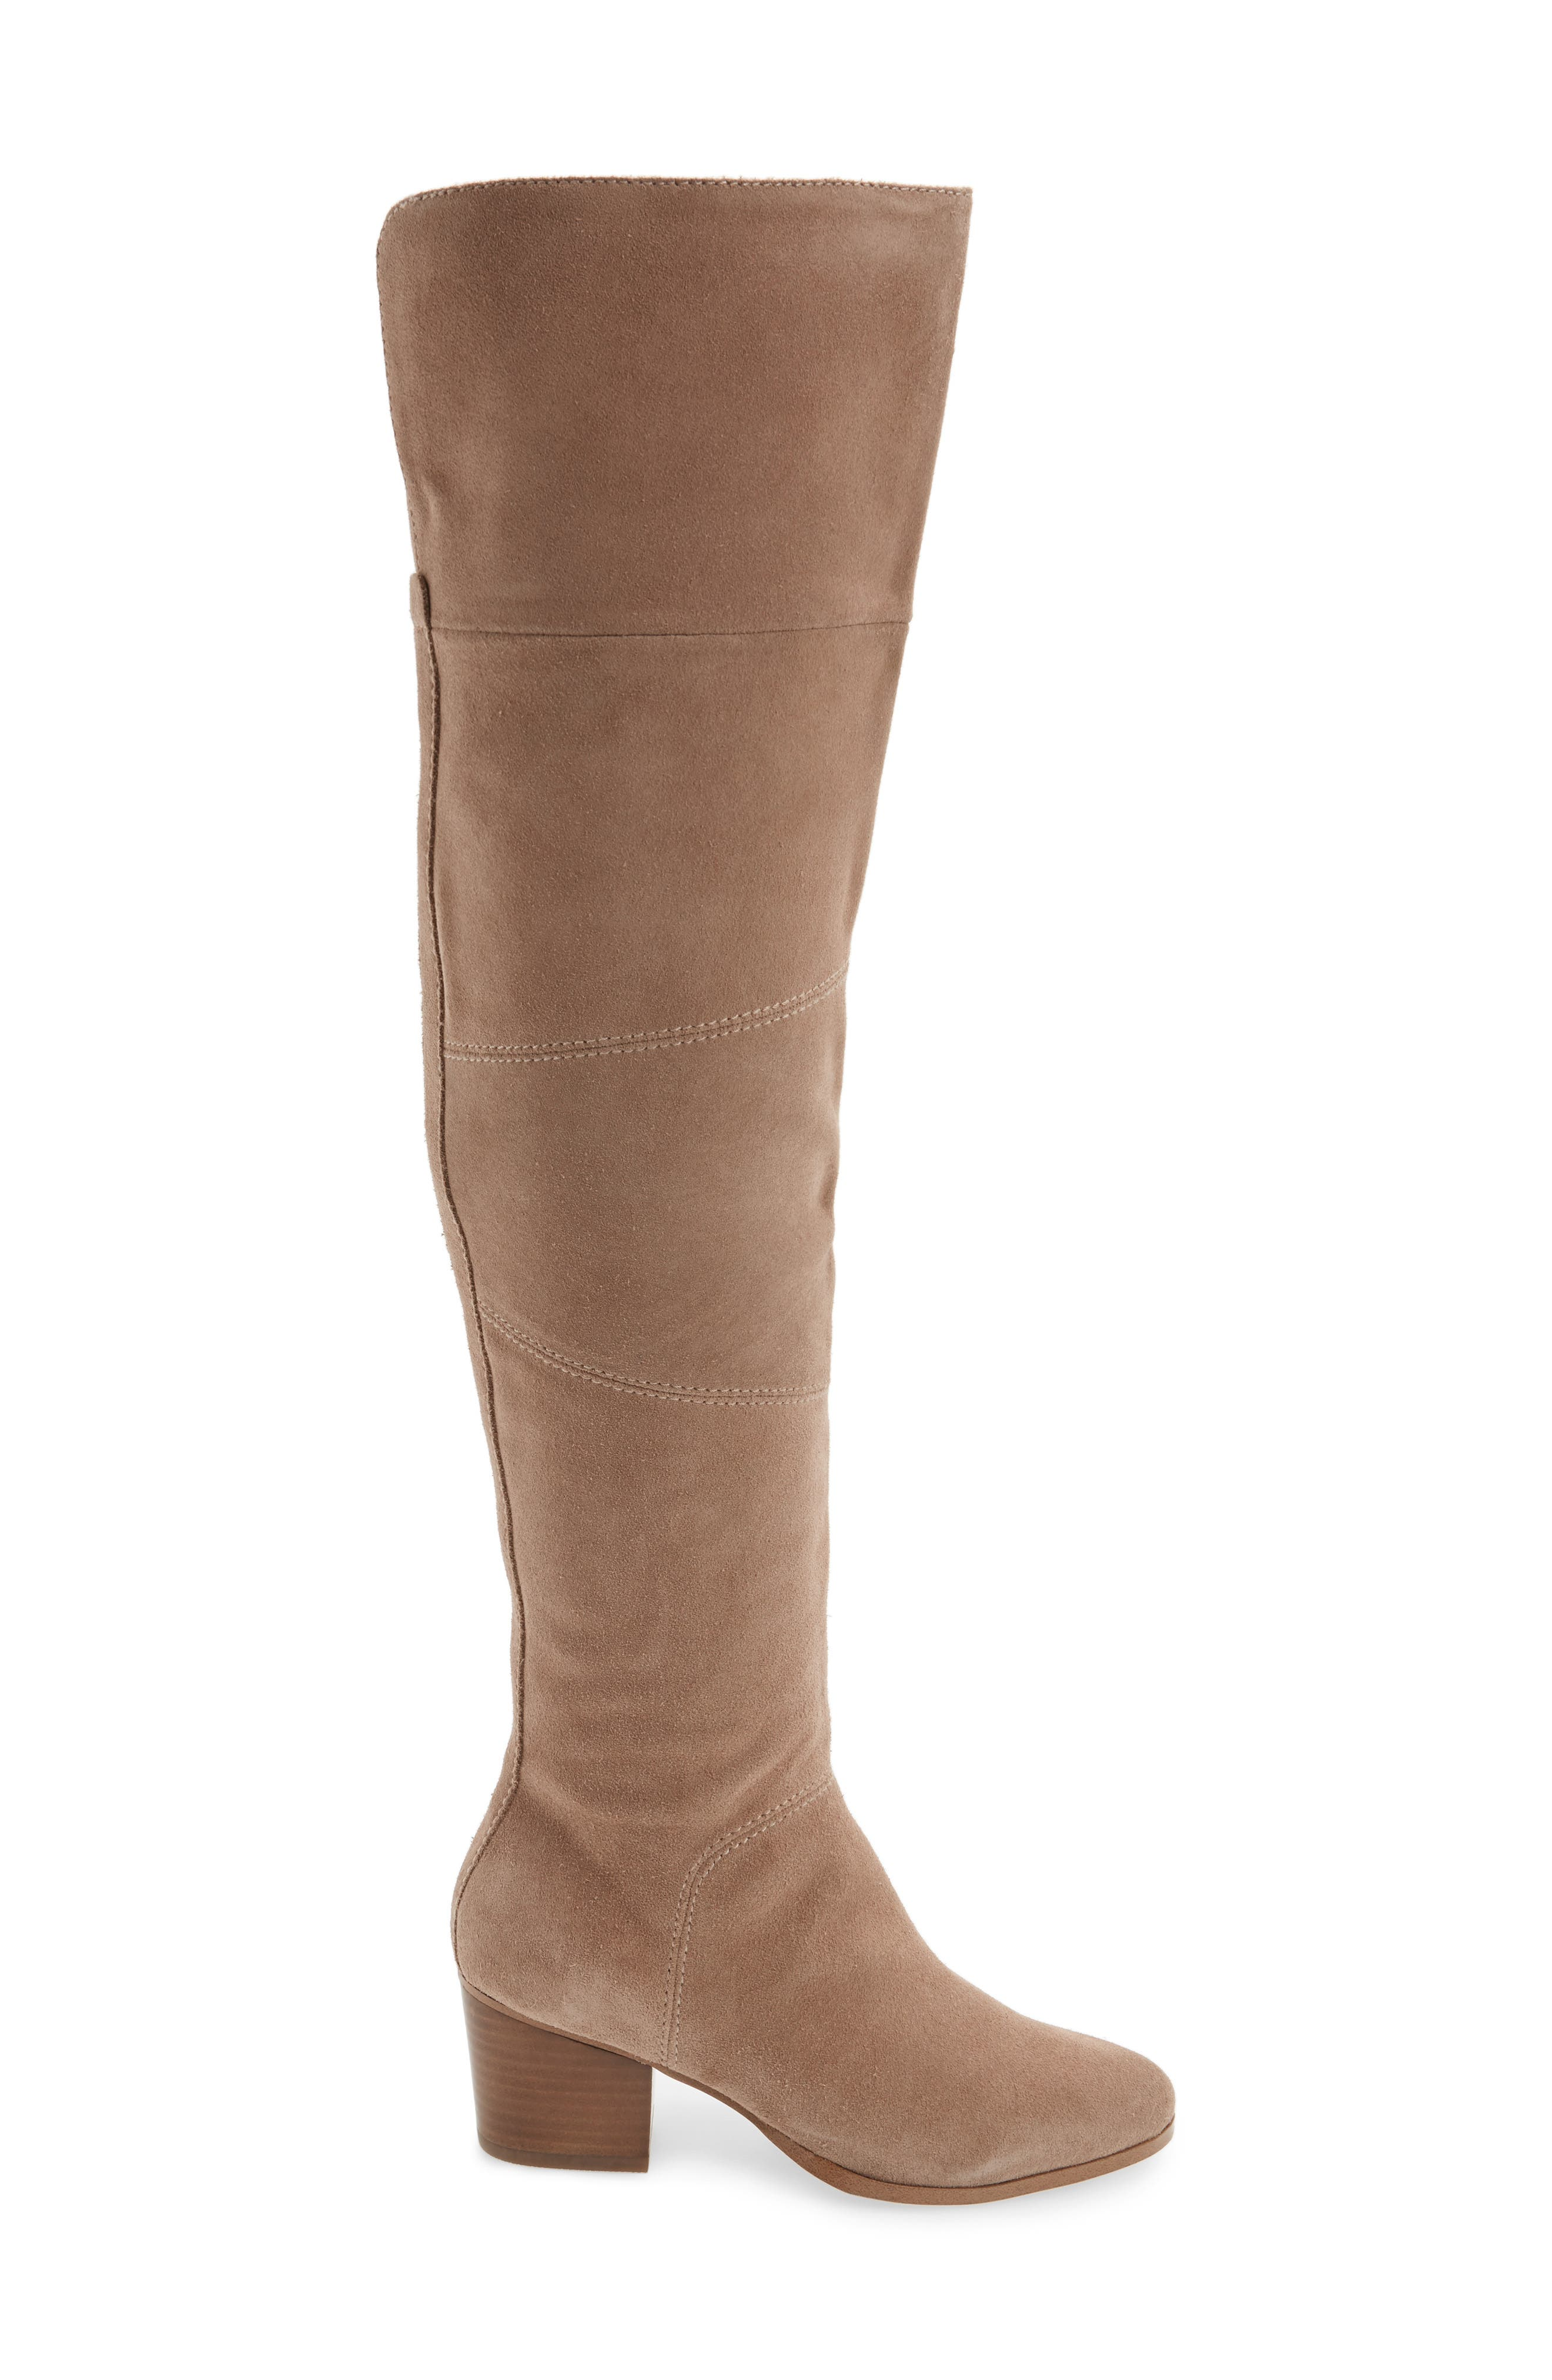 Melbourne Over the Knee Boot,                             Alternate thumbnail 3, color,                             Night Taupe Suede